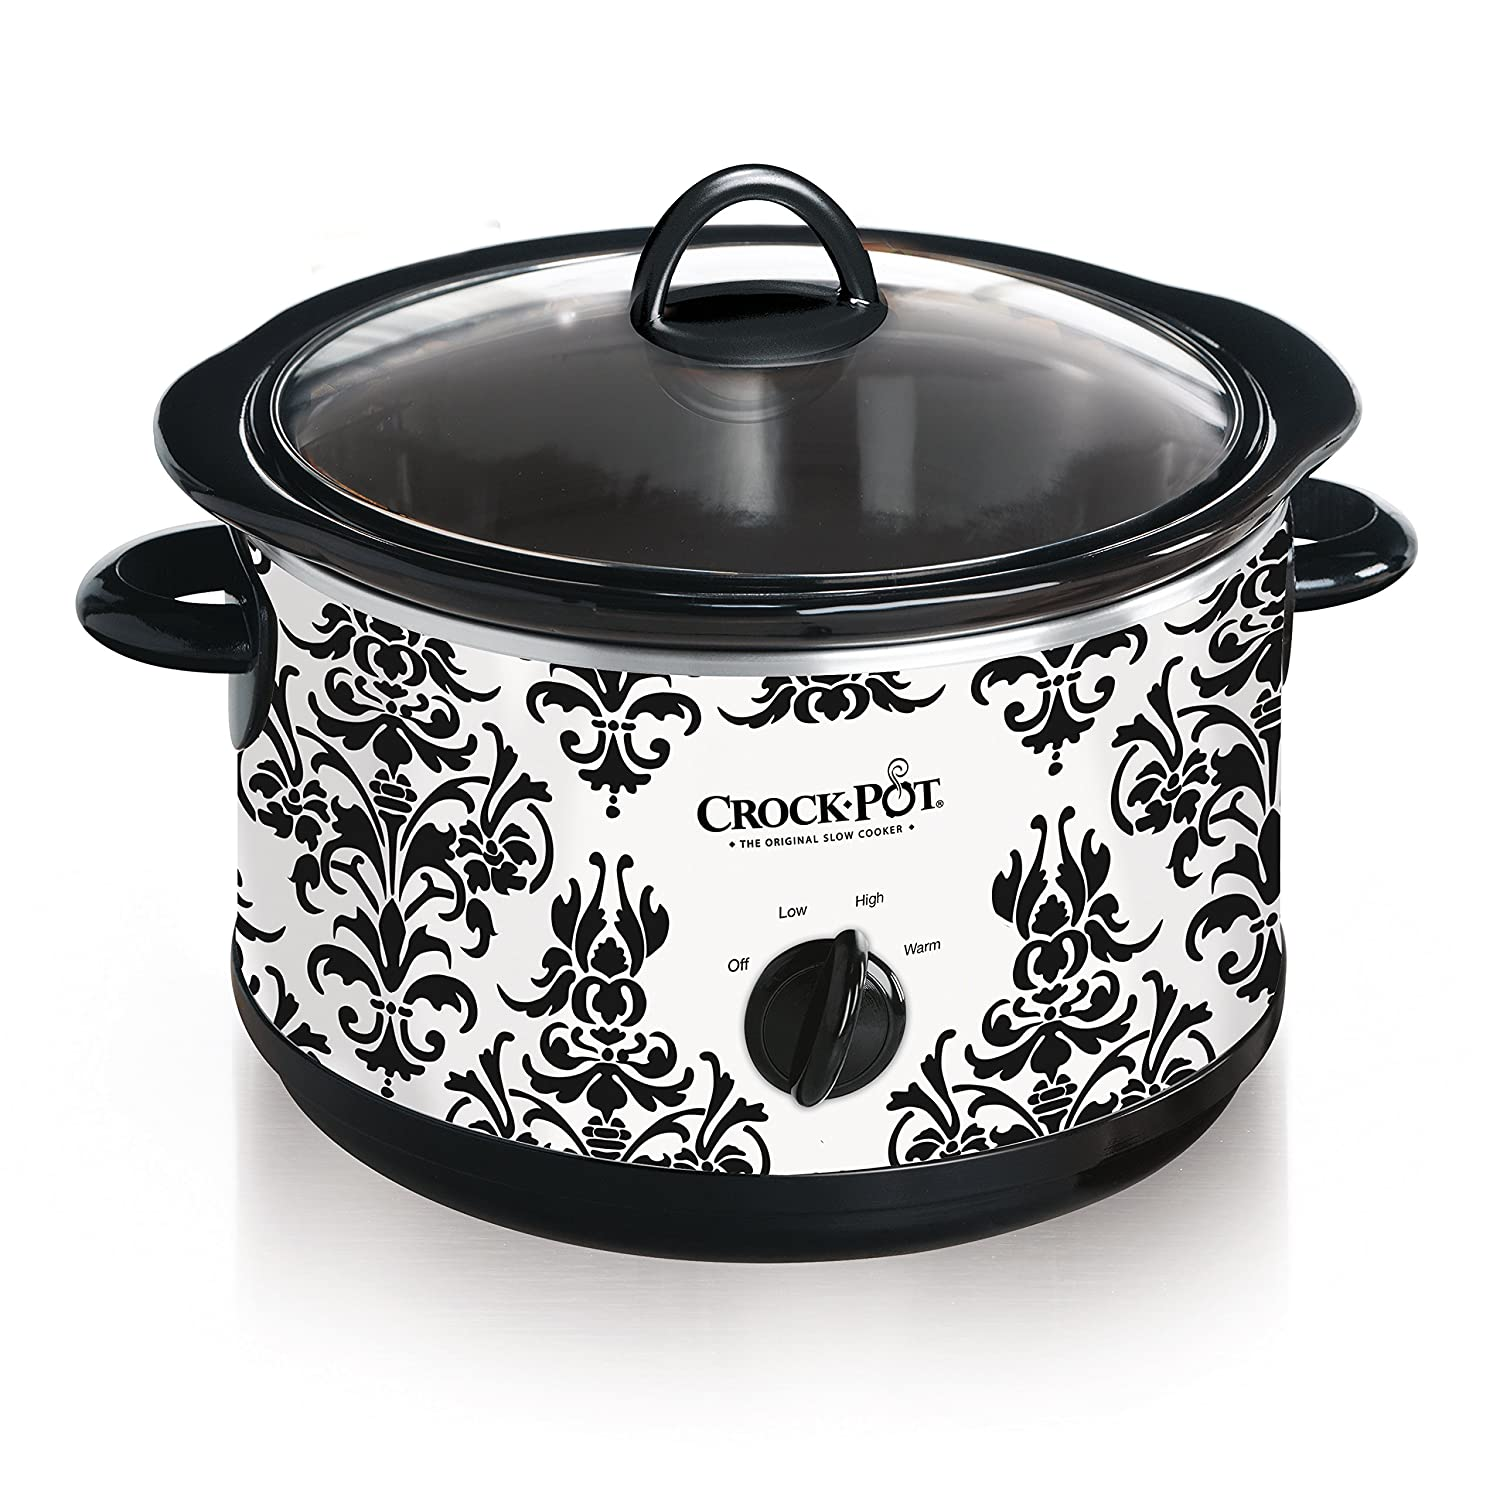 Crock-Pot 4.5-Quart Manual Slow Cooker, Damask Pattern Crockpot SCR450-PT